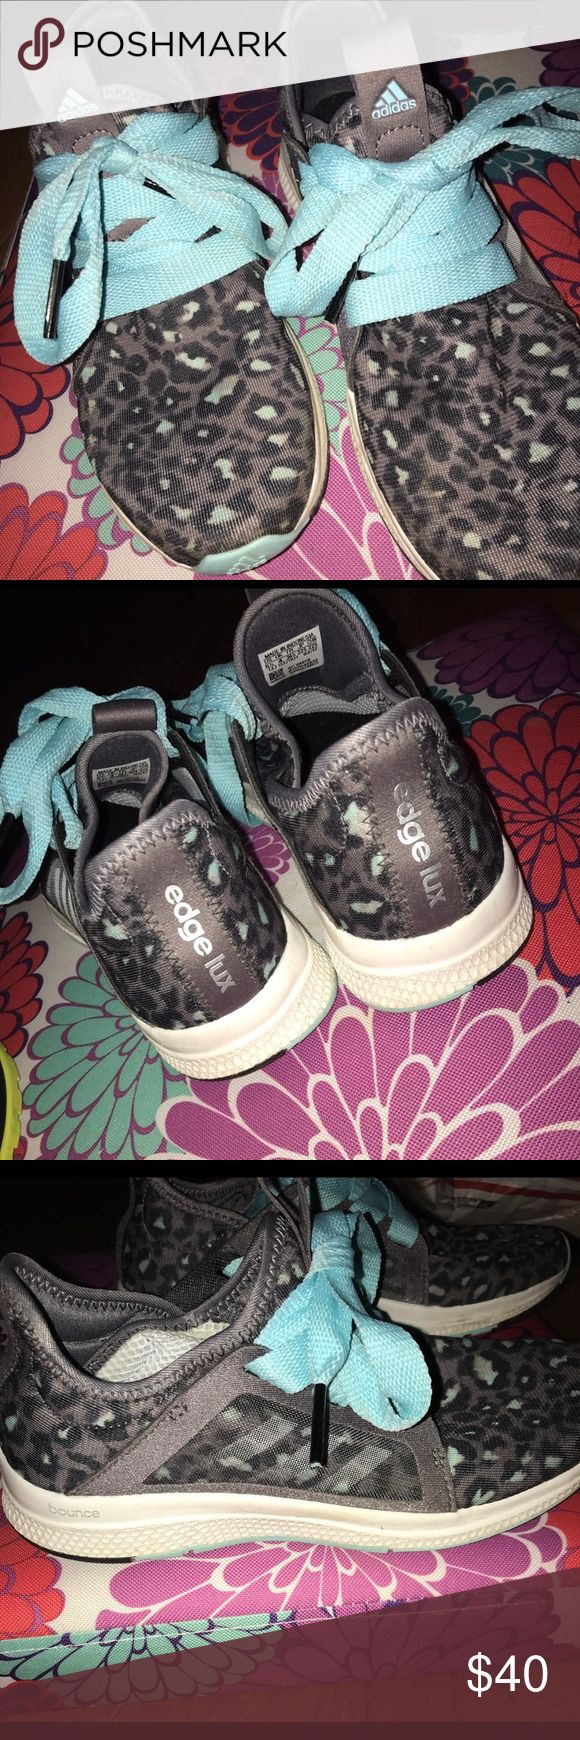 Adidas cheetah edge lux shoes Gray and baby blue cheetah print adidas shoes. Hardly ever worn! Great condition. No stains or worn looks adidas Shoes Athletic Shoes